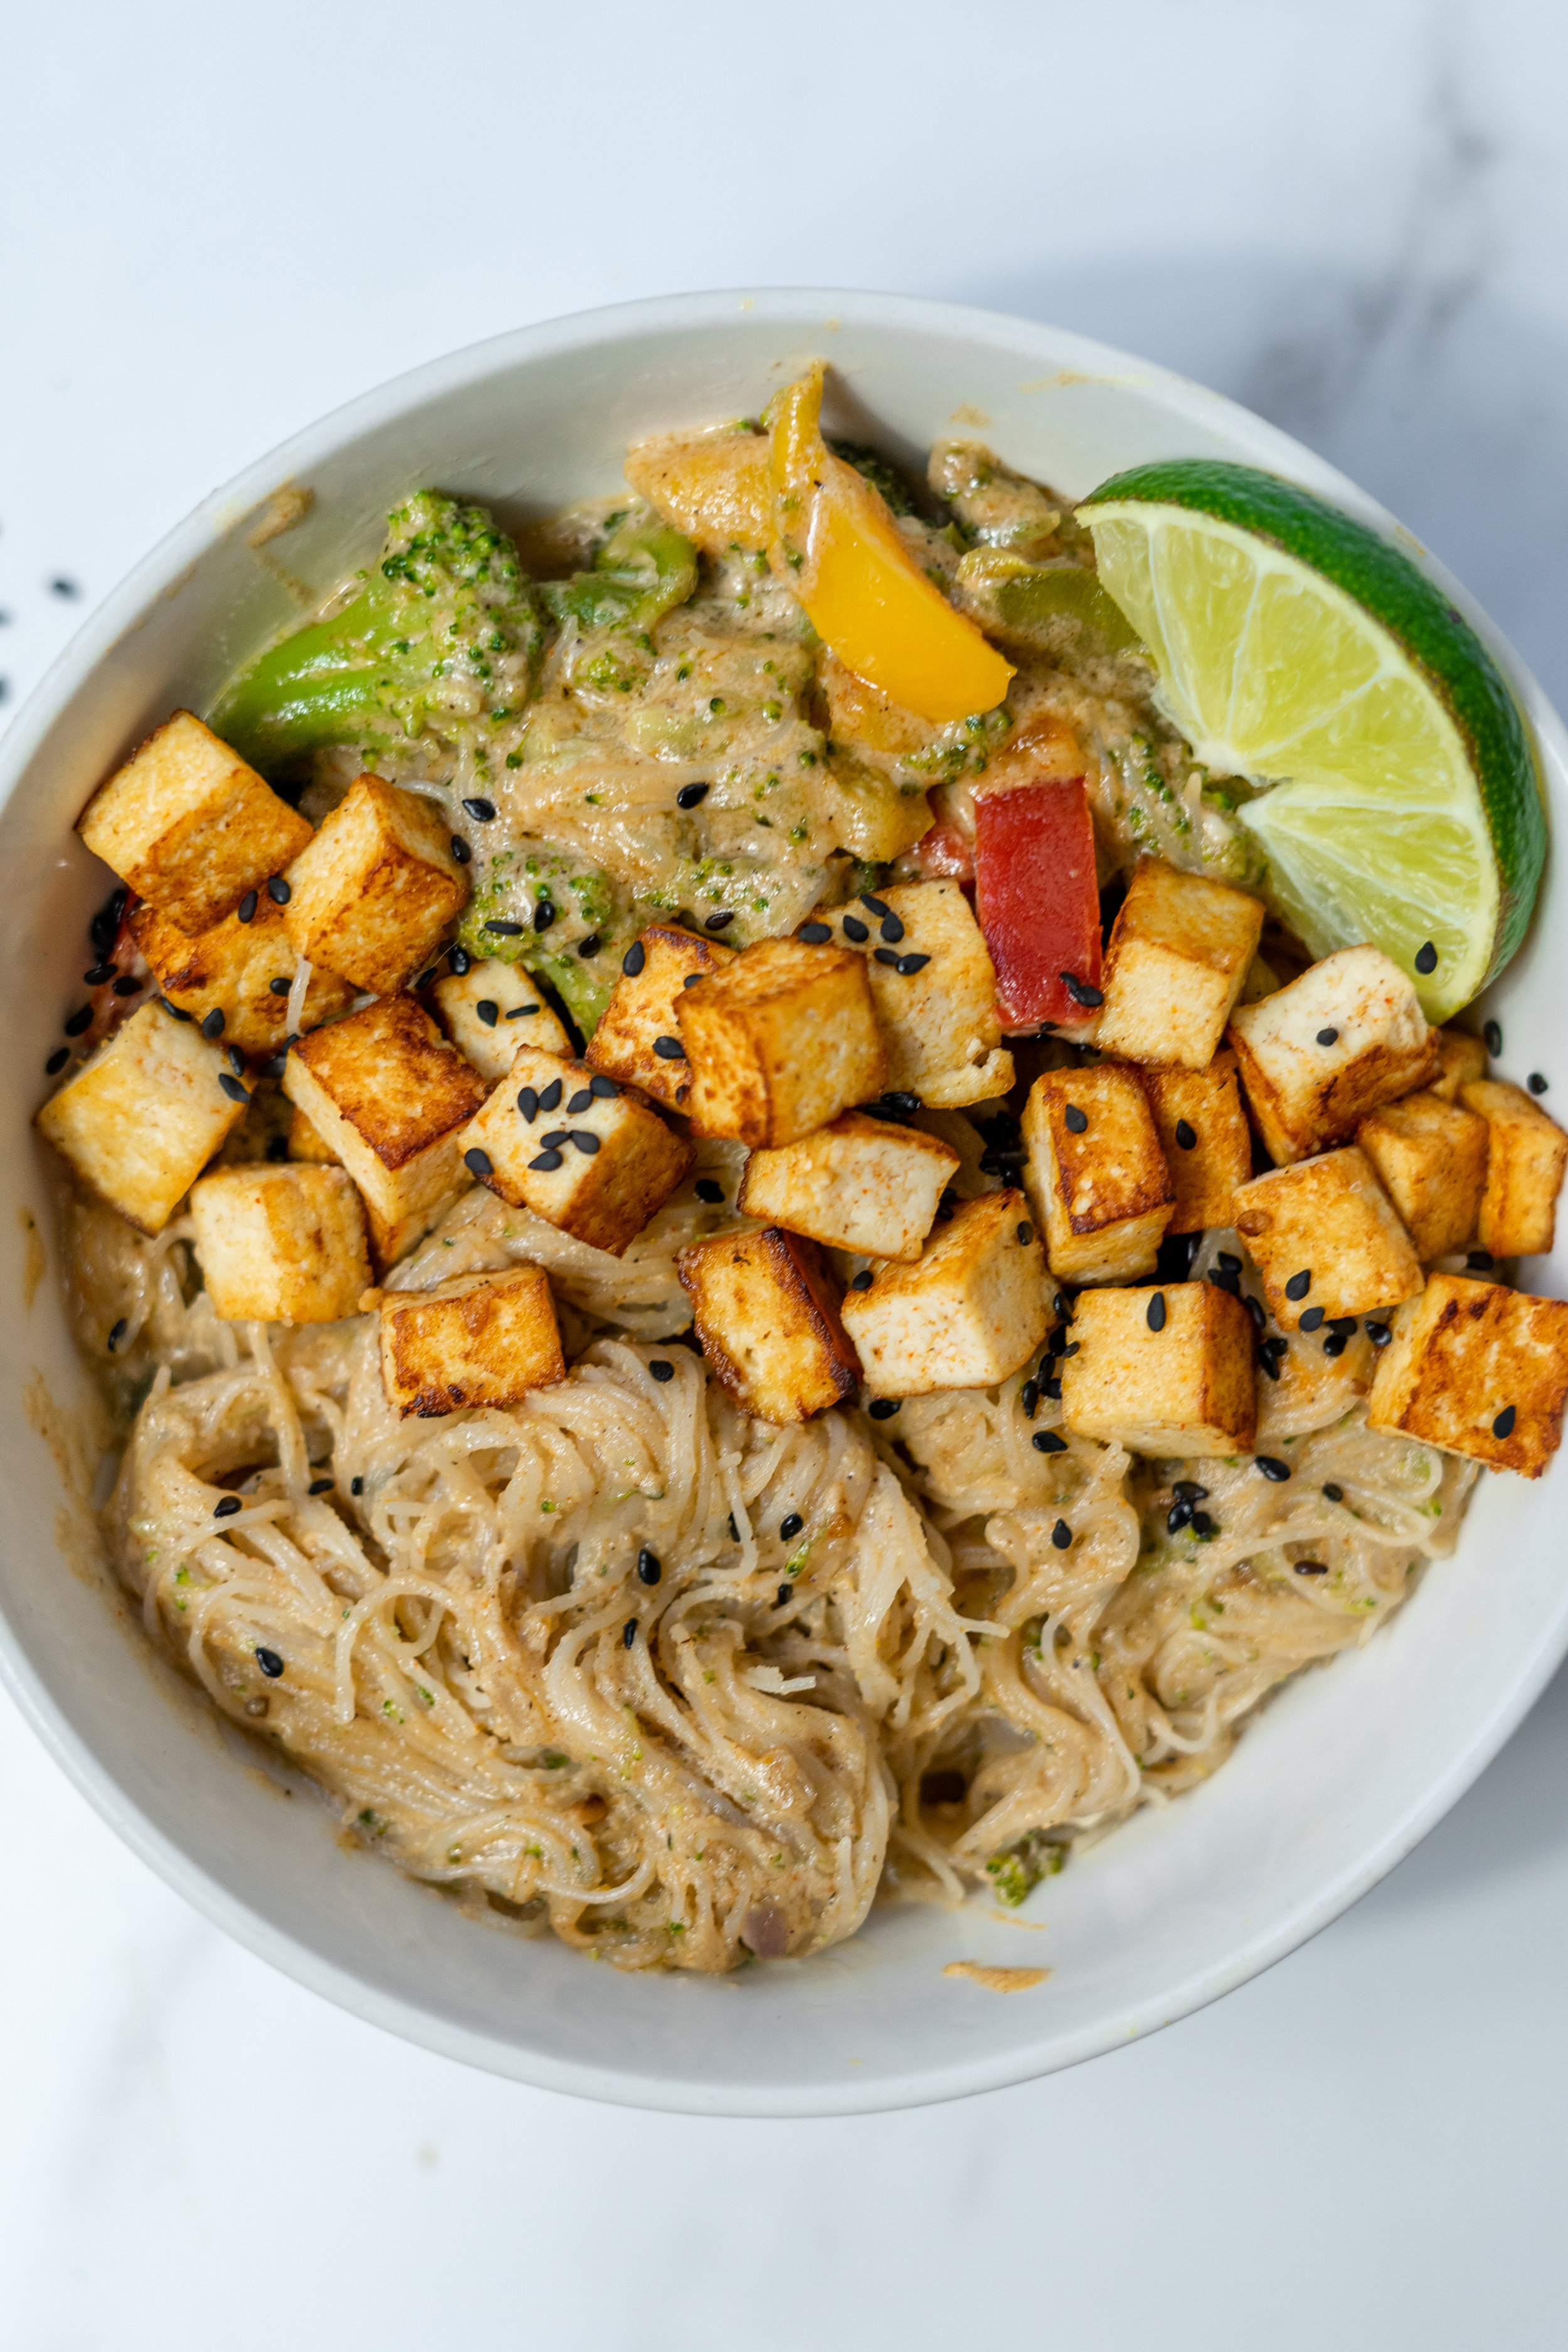 i am rorie, food blogger, vegan food blogger, curry recipe, easy curry recipe, vegan curry recipe, how to make curry, curry noodles, garam masala, curry, ginger, indian food, vegan indian recipes, chicago food blogger, chicago vegan food blogger, tofu, how to cook tofu, crispy tofu recipe, crispy tofu, how to make crispy tofu, sesame seeds, sesame oil, i am rorie curry recipe, broccoli, bell peppers, rice noodles, recipe using rice noodles, easy vegan recipes